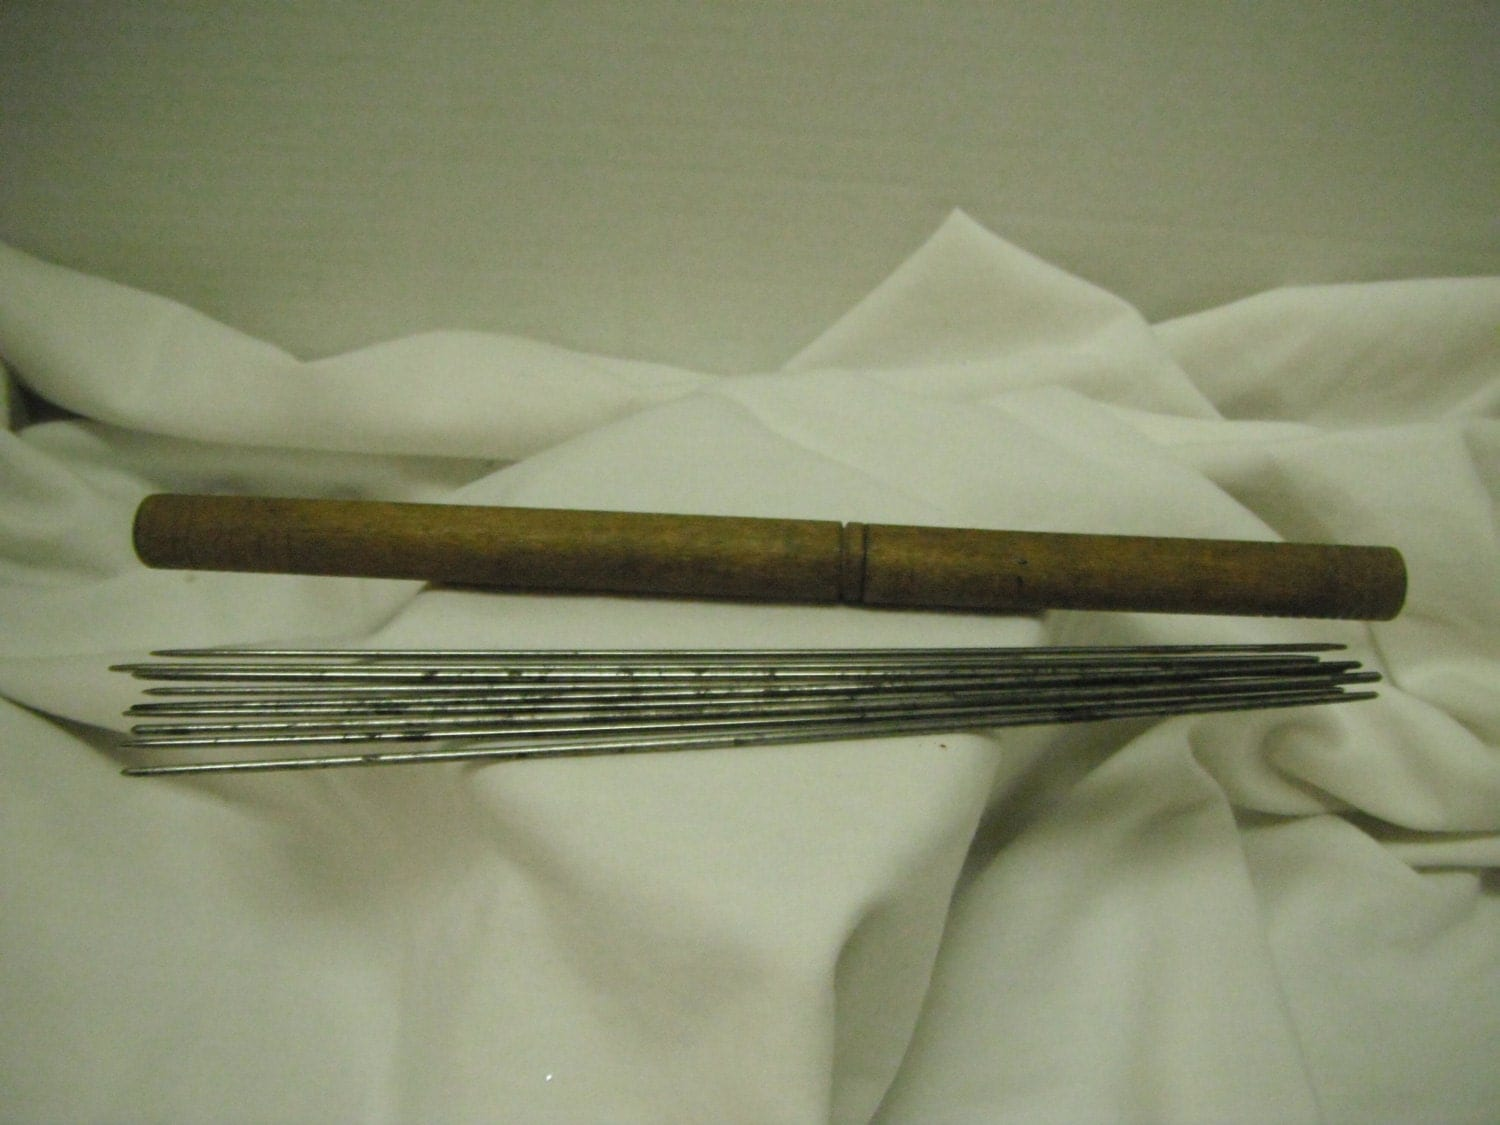 Vintage Knitting Needles : Antique knitting needles and wooden case by yonderyears on